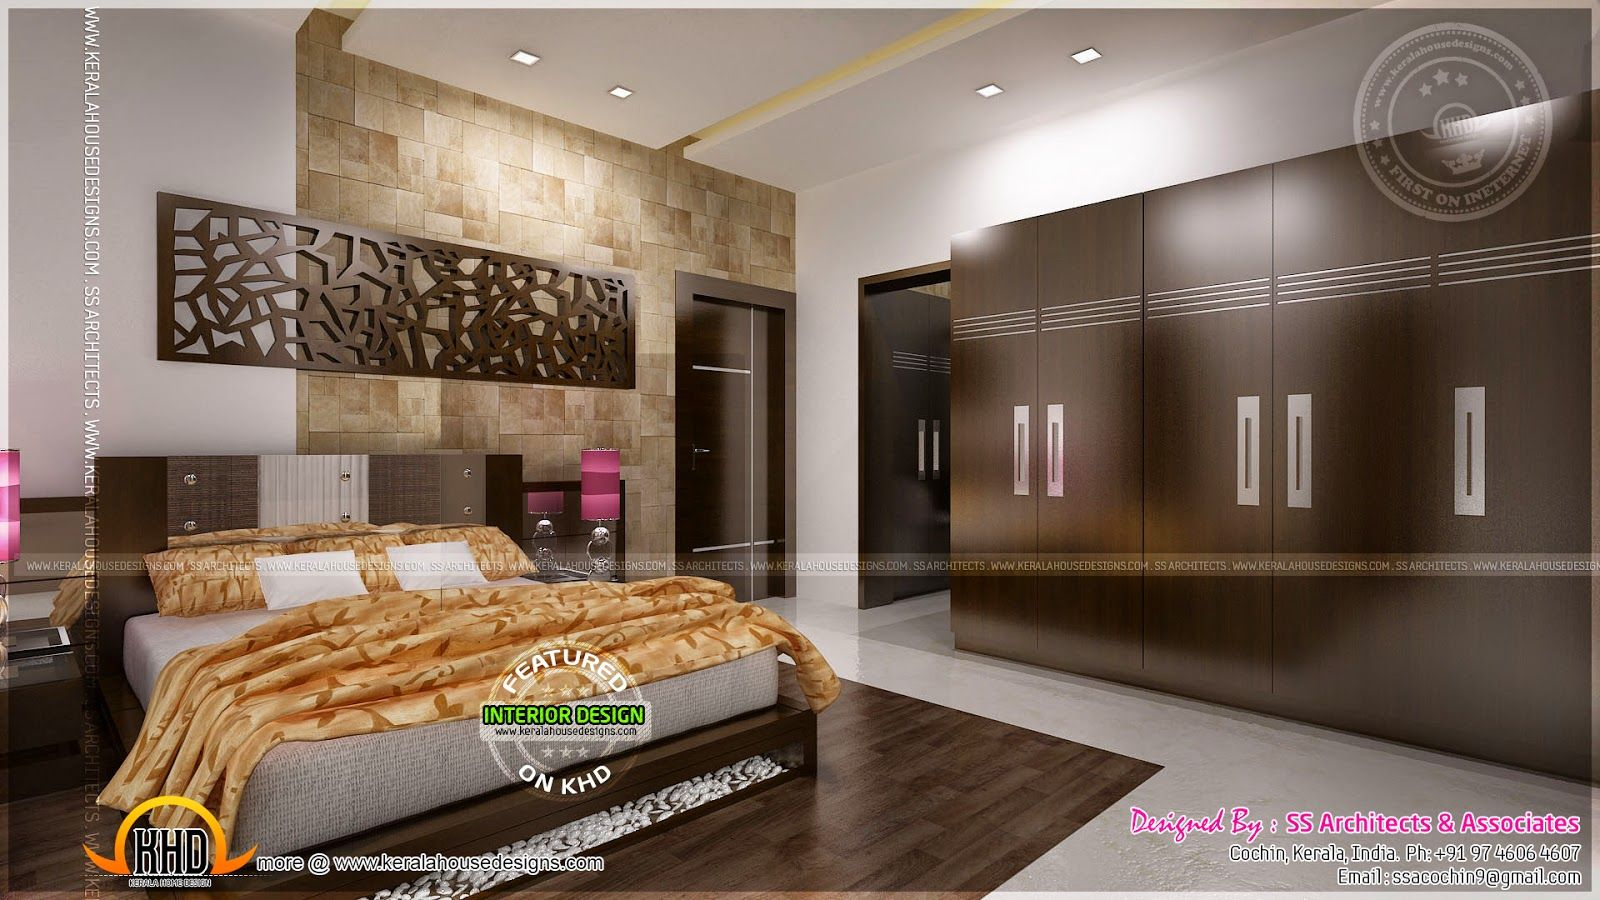 Master Bedroom Interior Design Ideas Can Often Be The Forgotten Room In Your Home Because No One